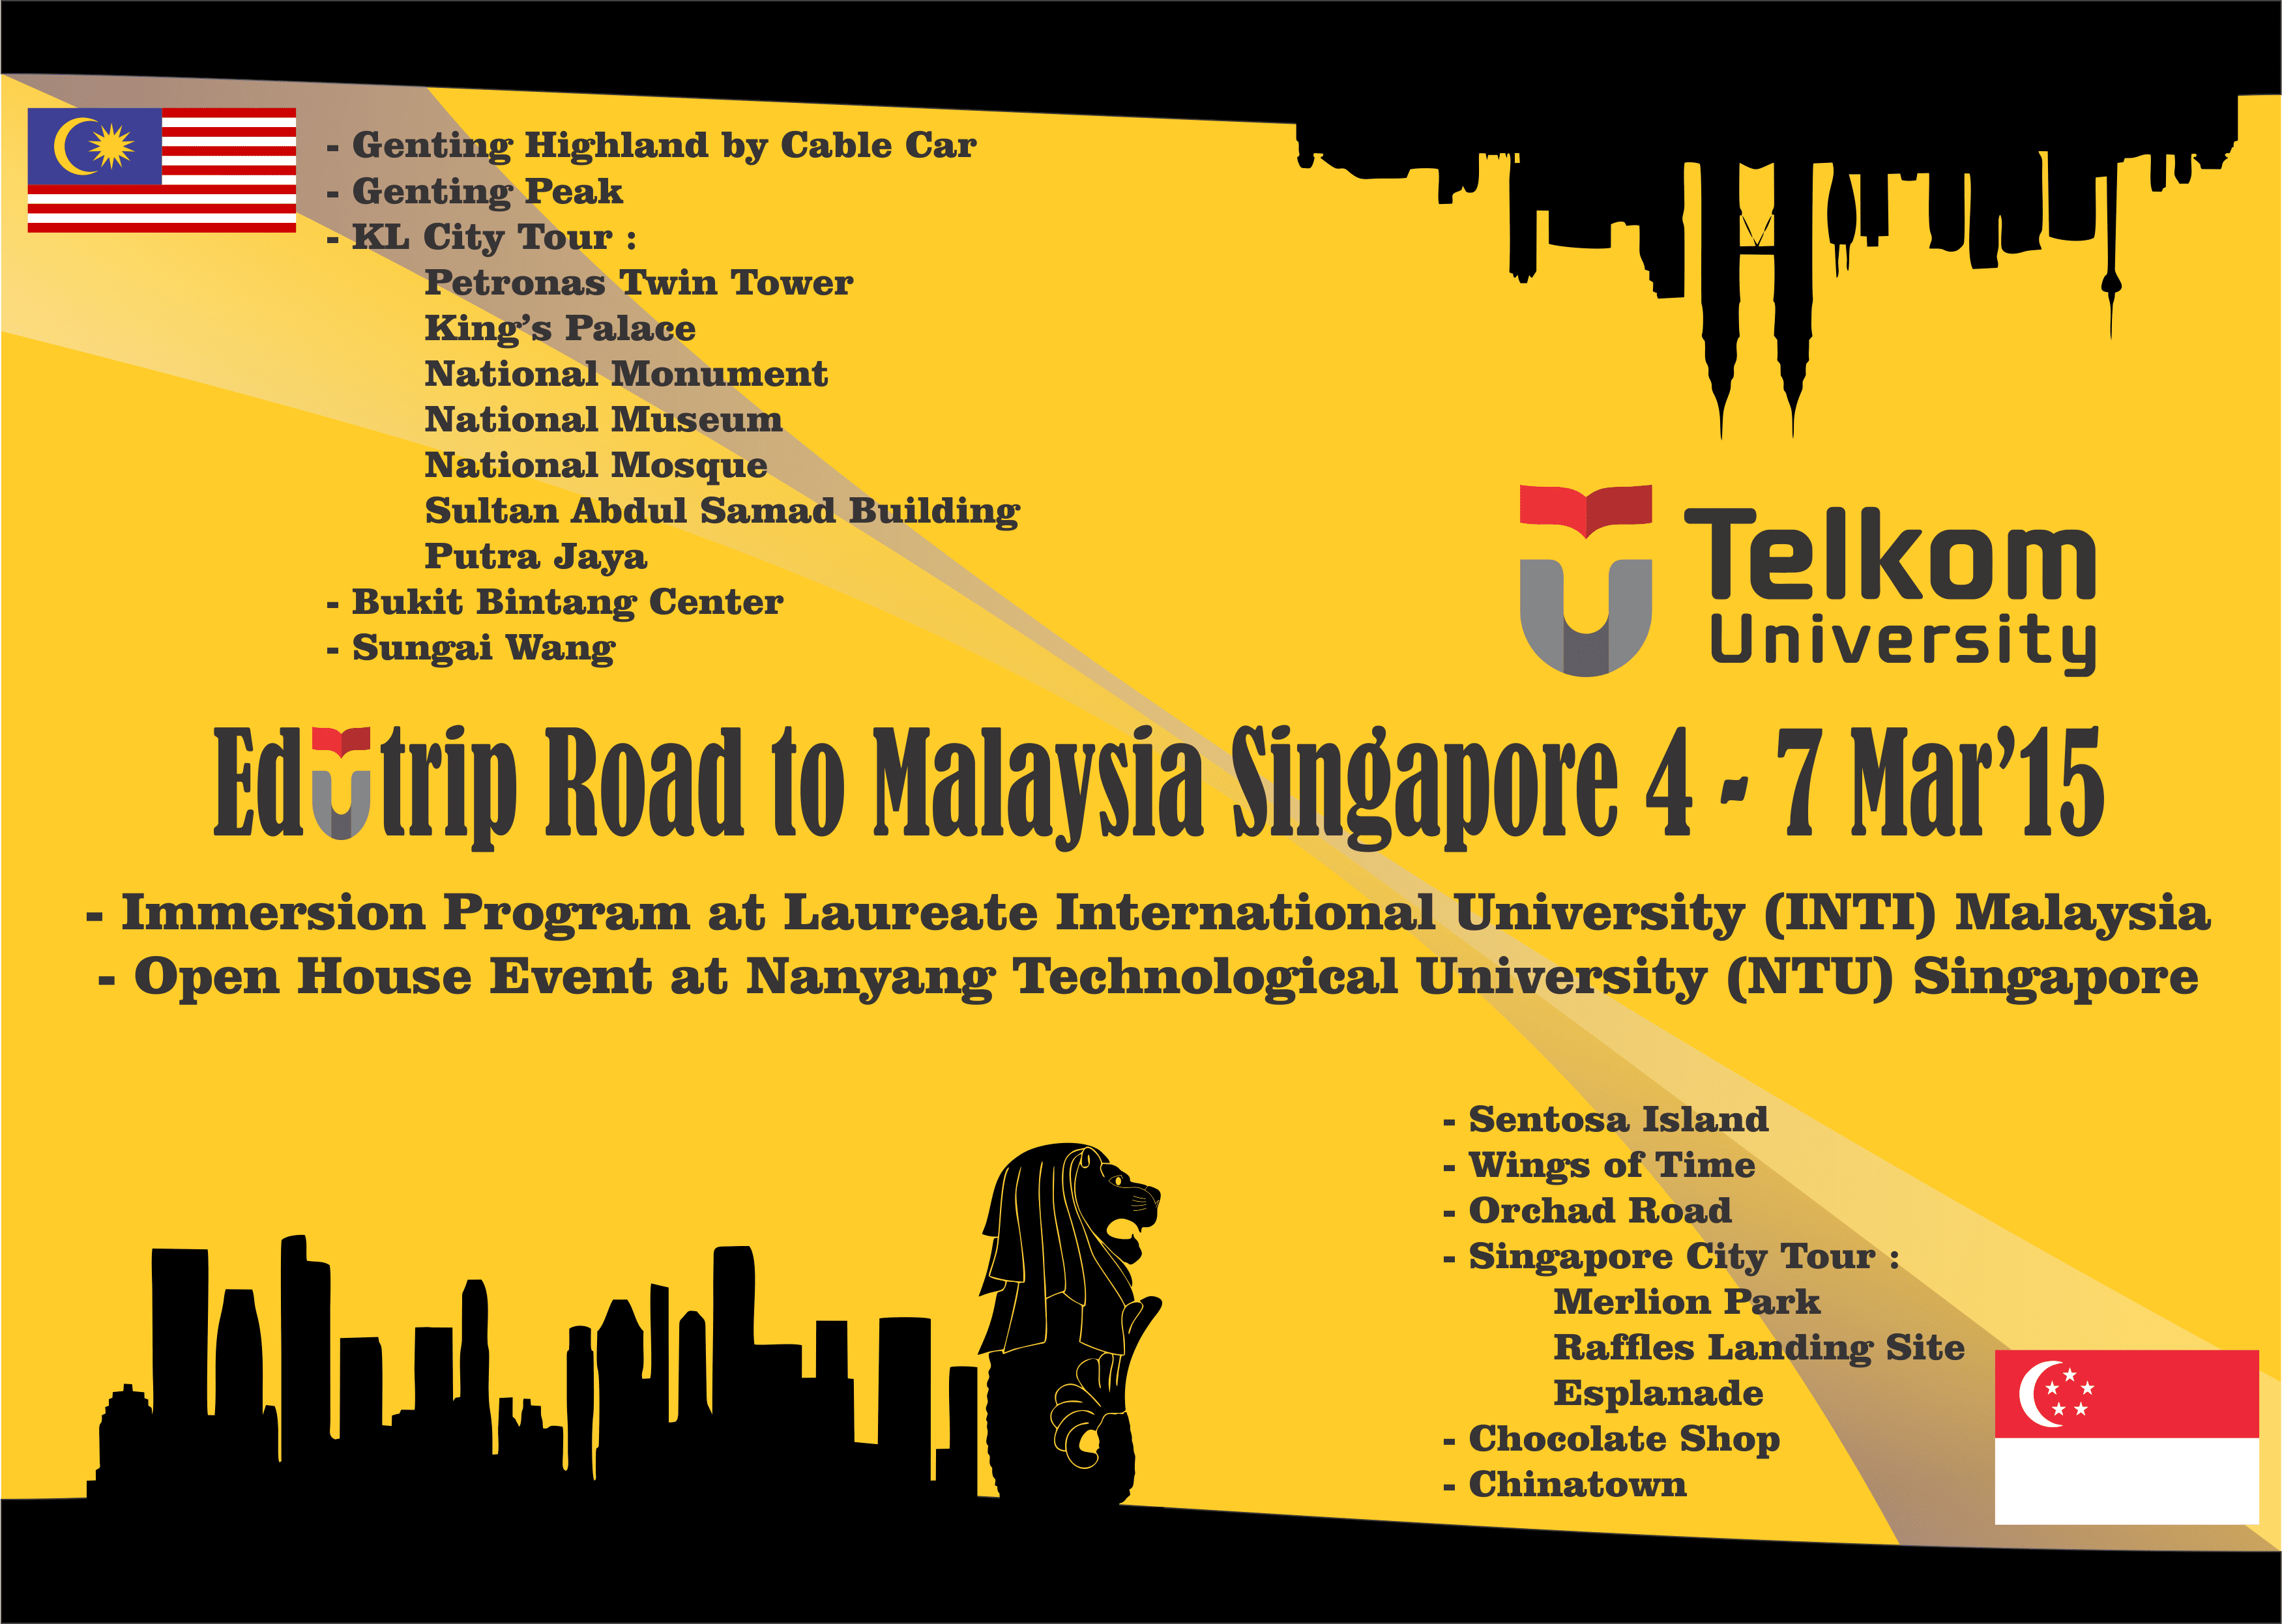 Itinerary of Edutrip Road to Malaysia Singapore on March 2015